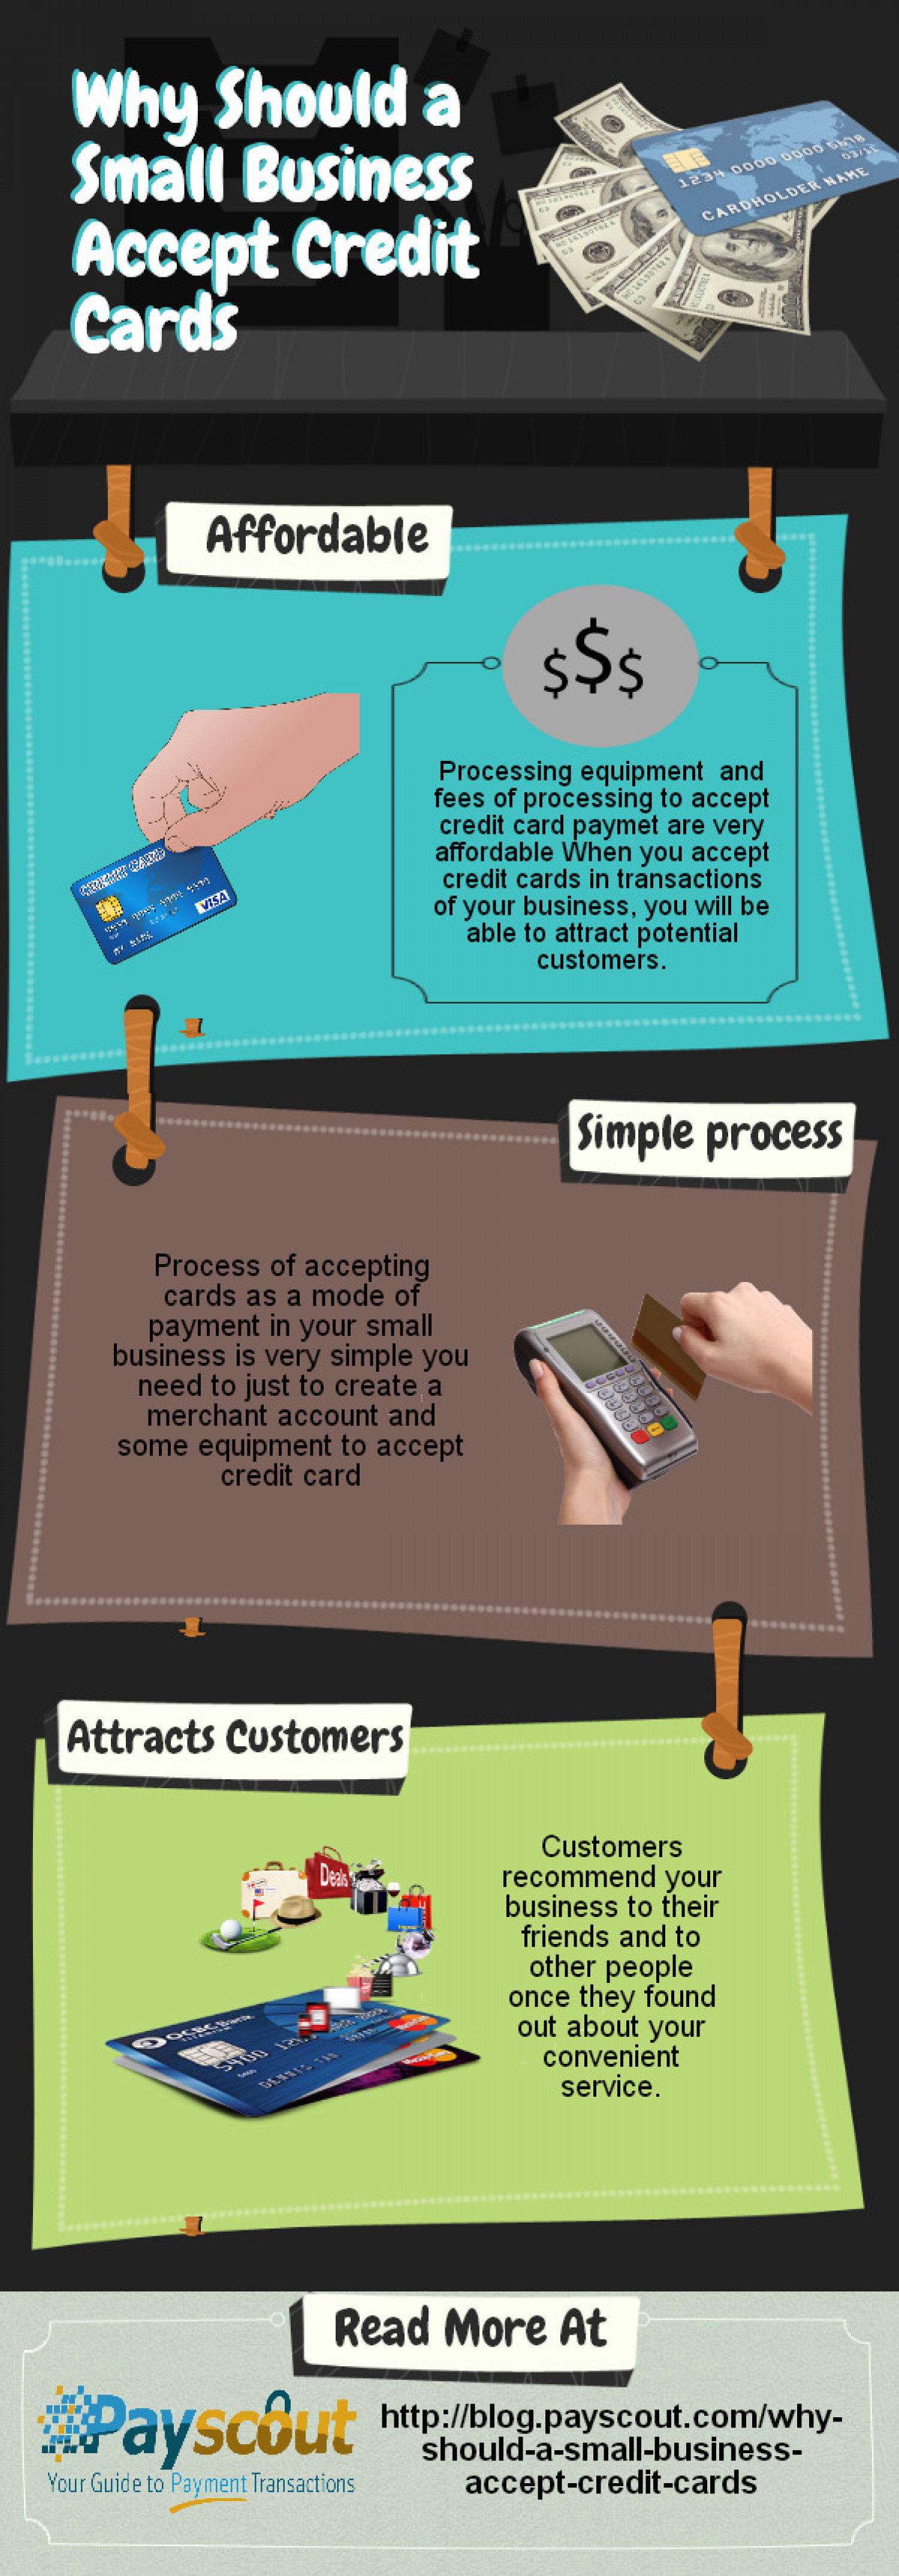 Why Should Small Business Accept Credit Cards | Visual.ly